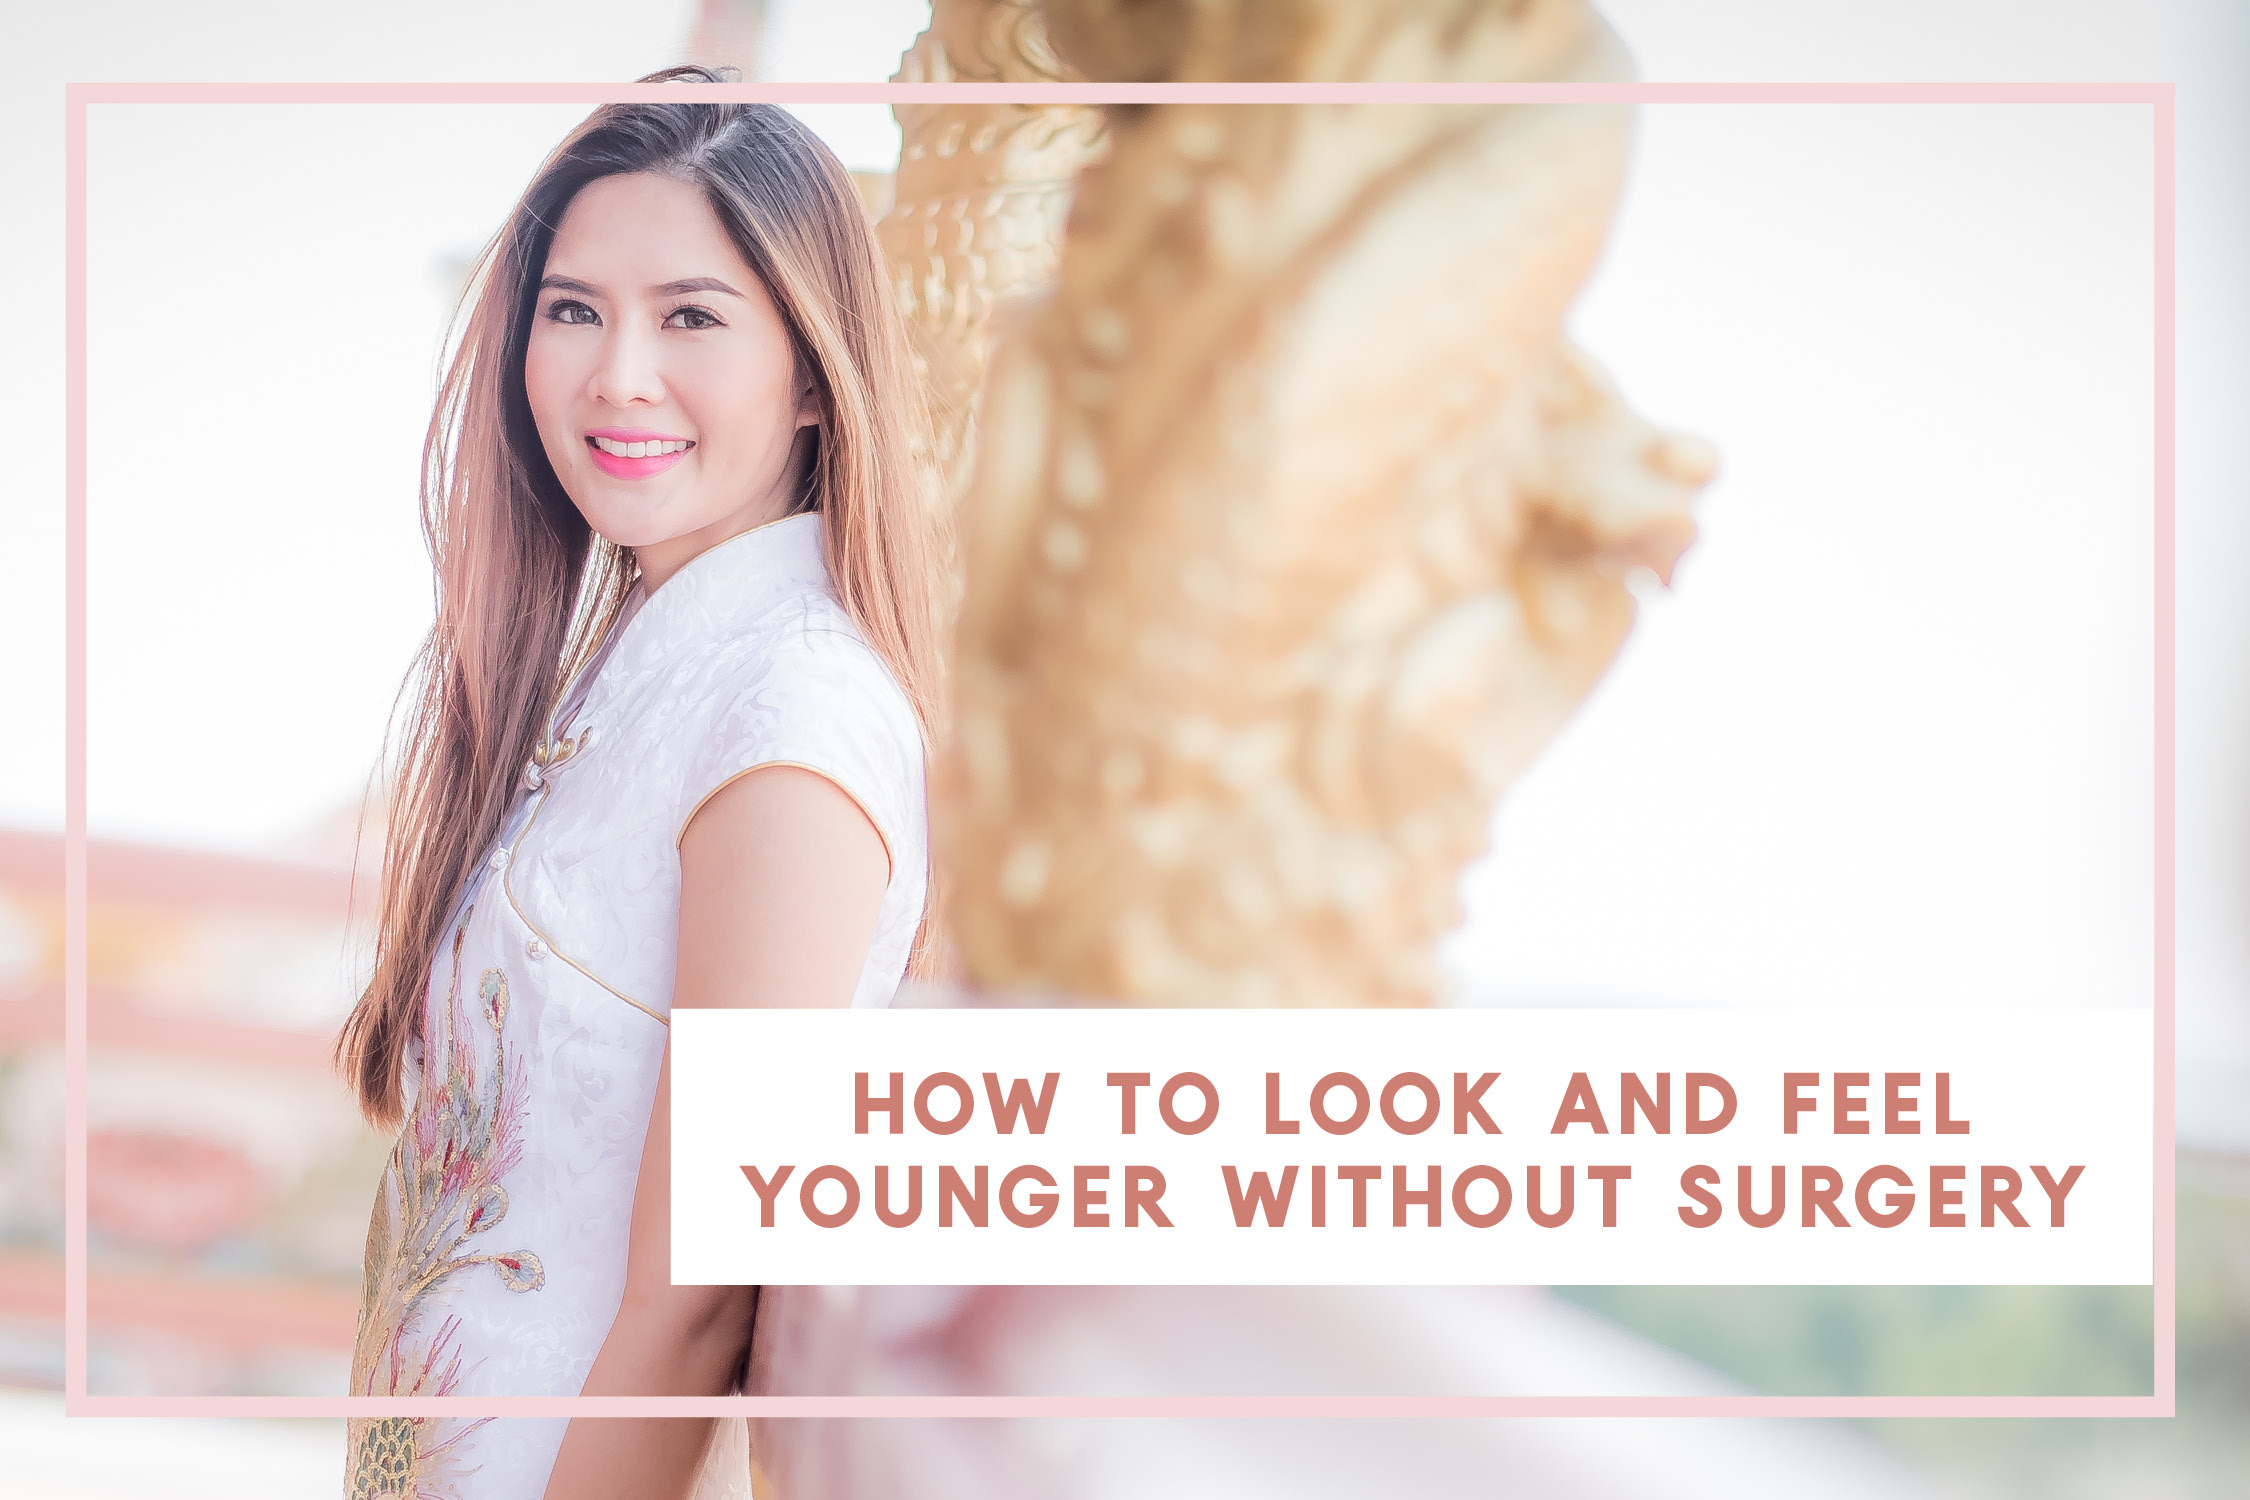 How to Look and Feel Younger Without Surgery